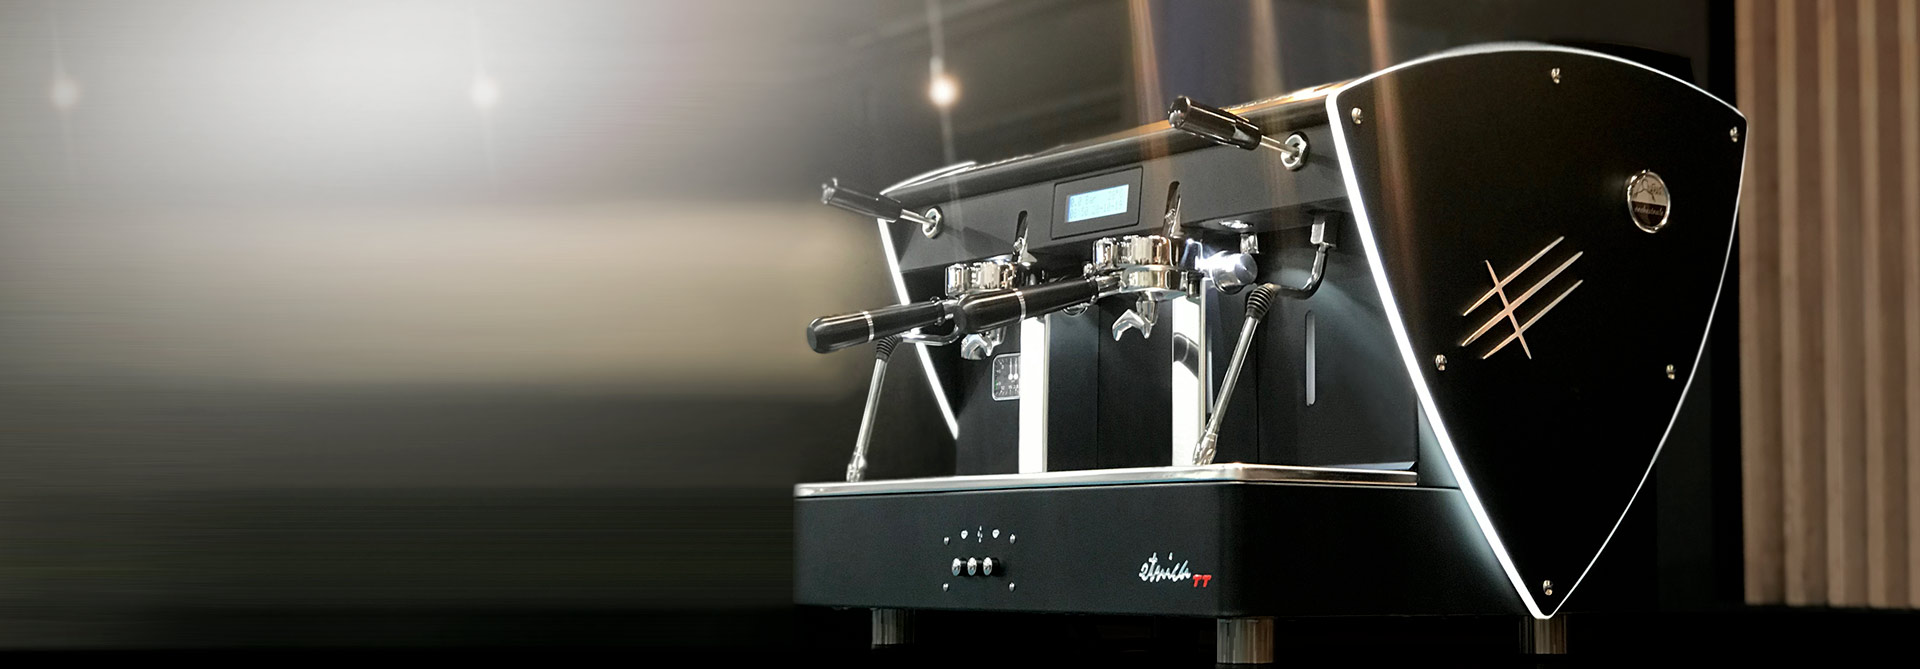 Etnica-Display-TT-2-groups-E61-commercial-Orchestrale-coffee-machine-06